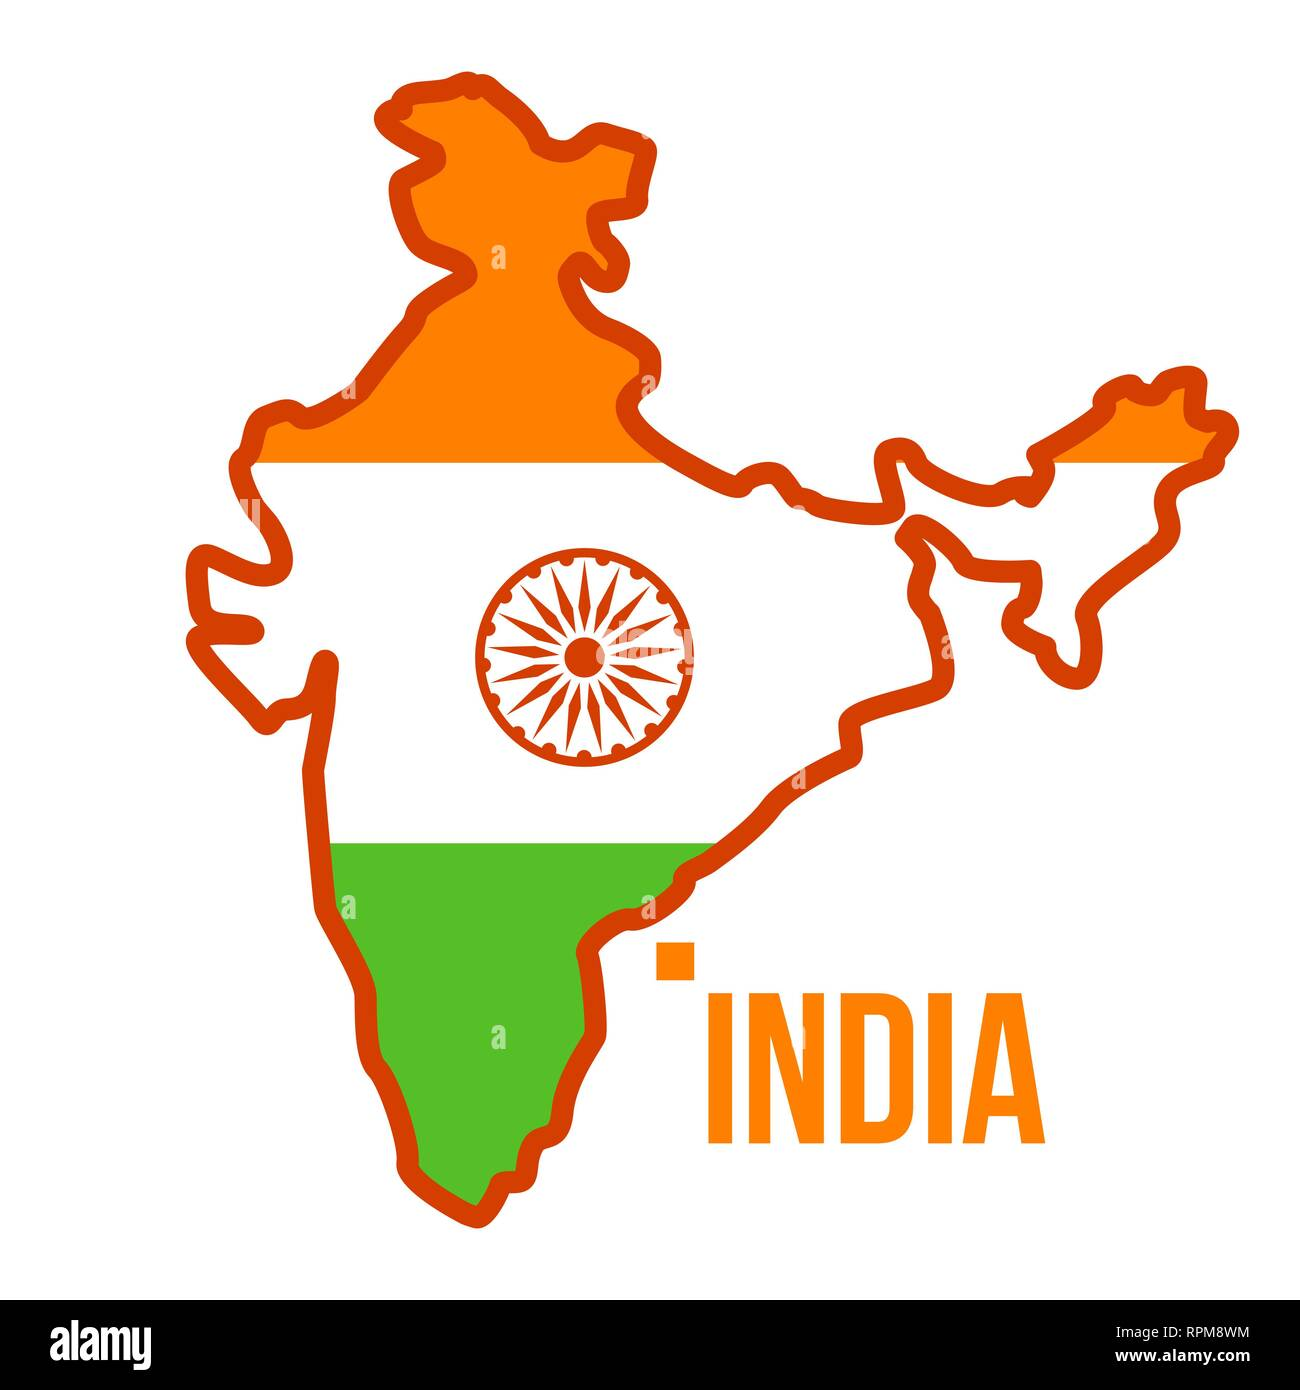 India Map Flag.India Map Vector Flag Isolated Flat Cartoon Illustration Stock